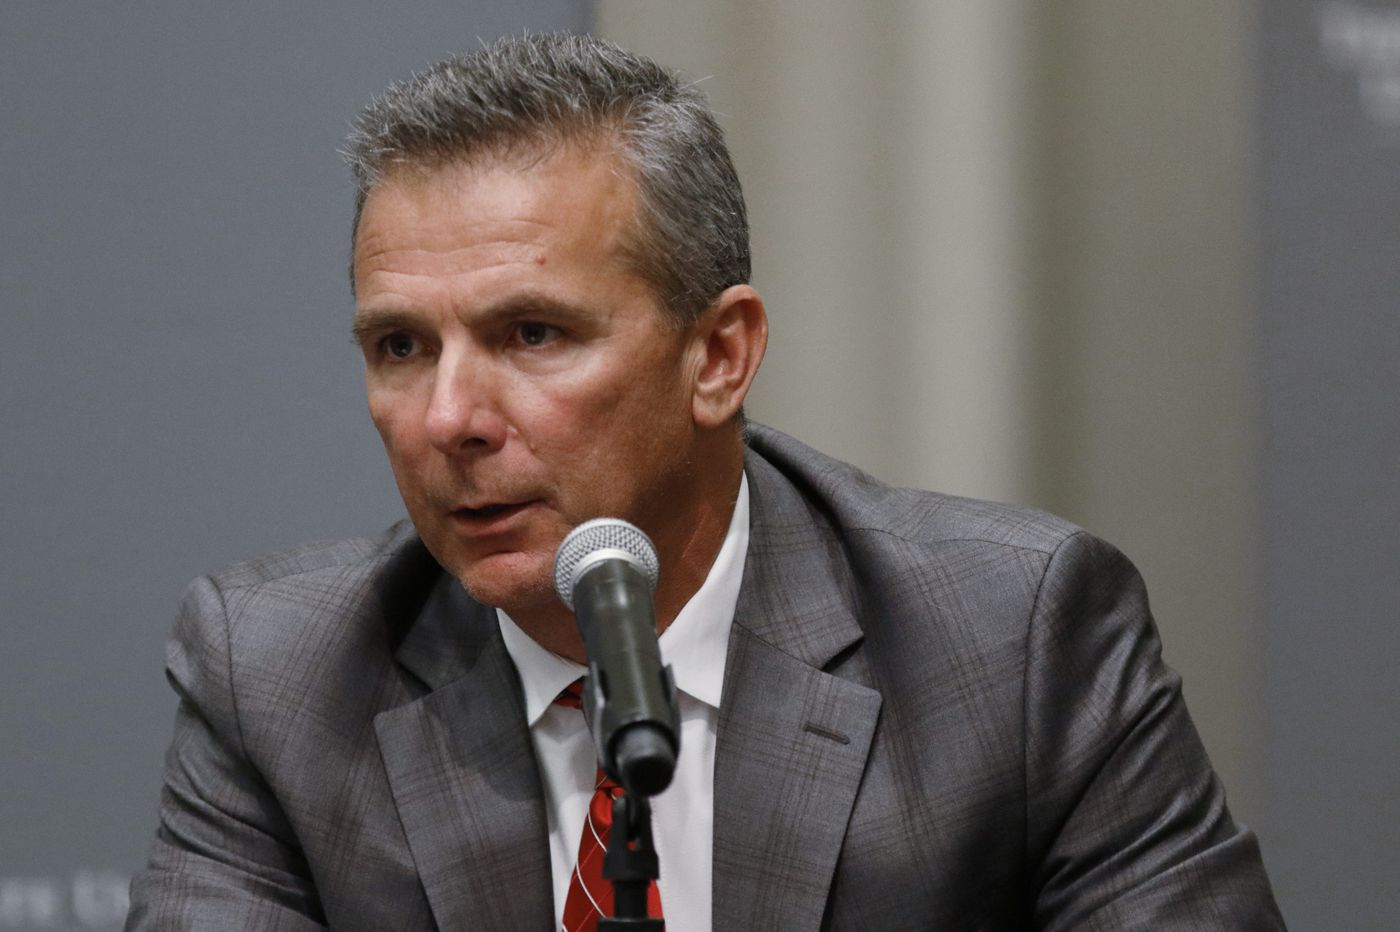 Urban Meyer and Ohio State should have acted on domestic violence accusations, not hidden them | Mike Jensen